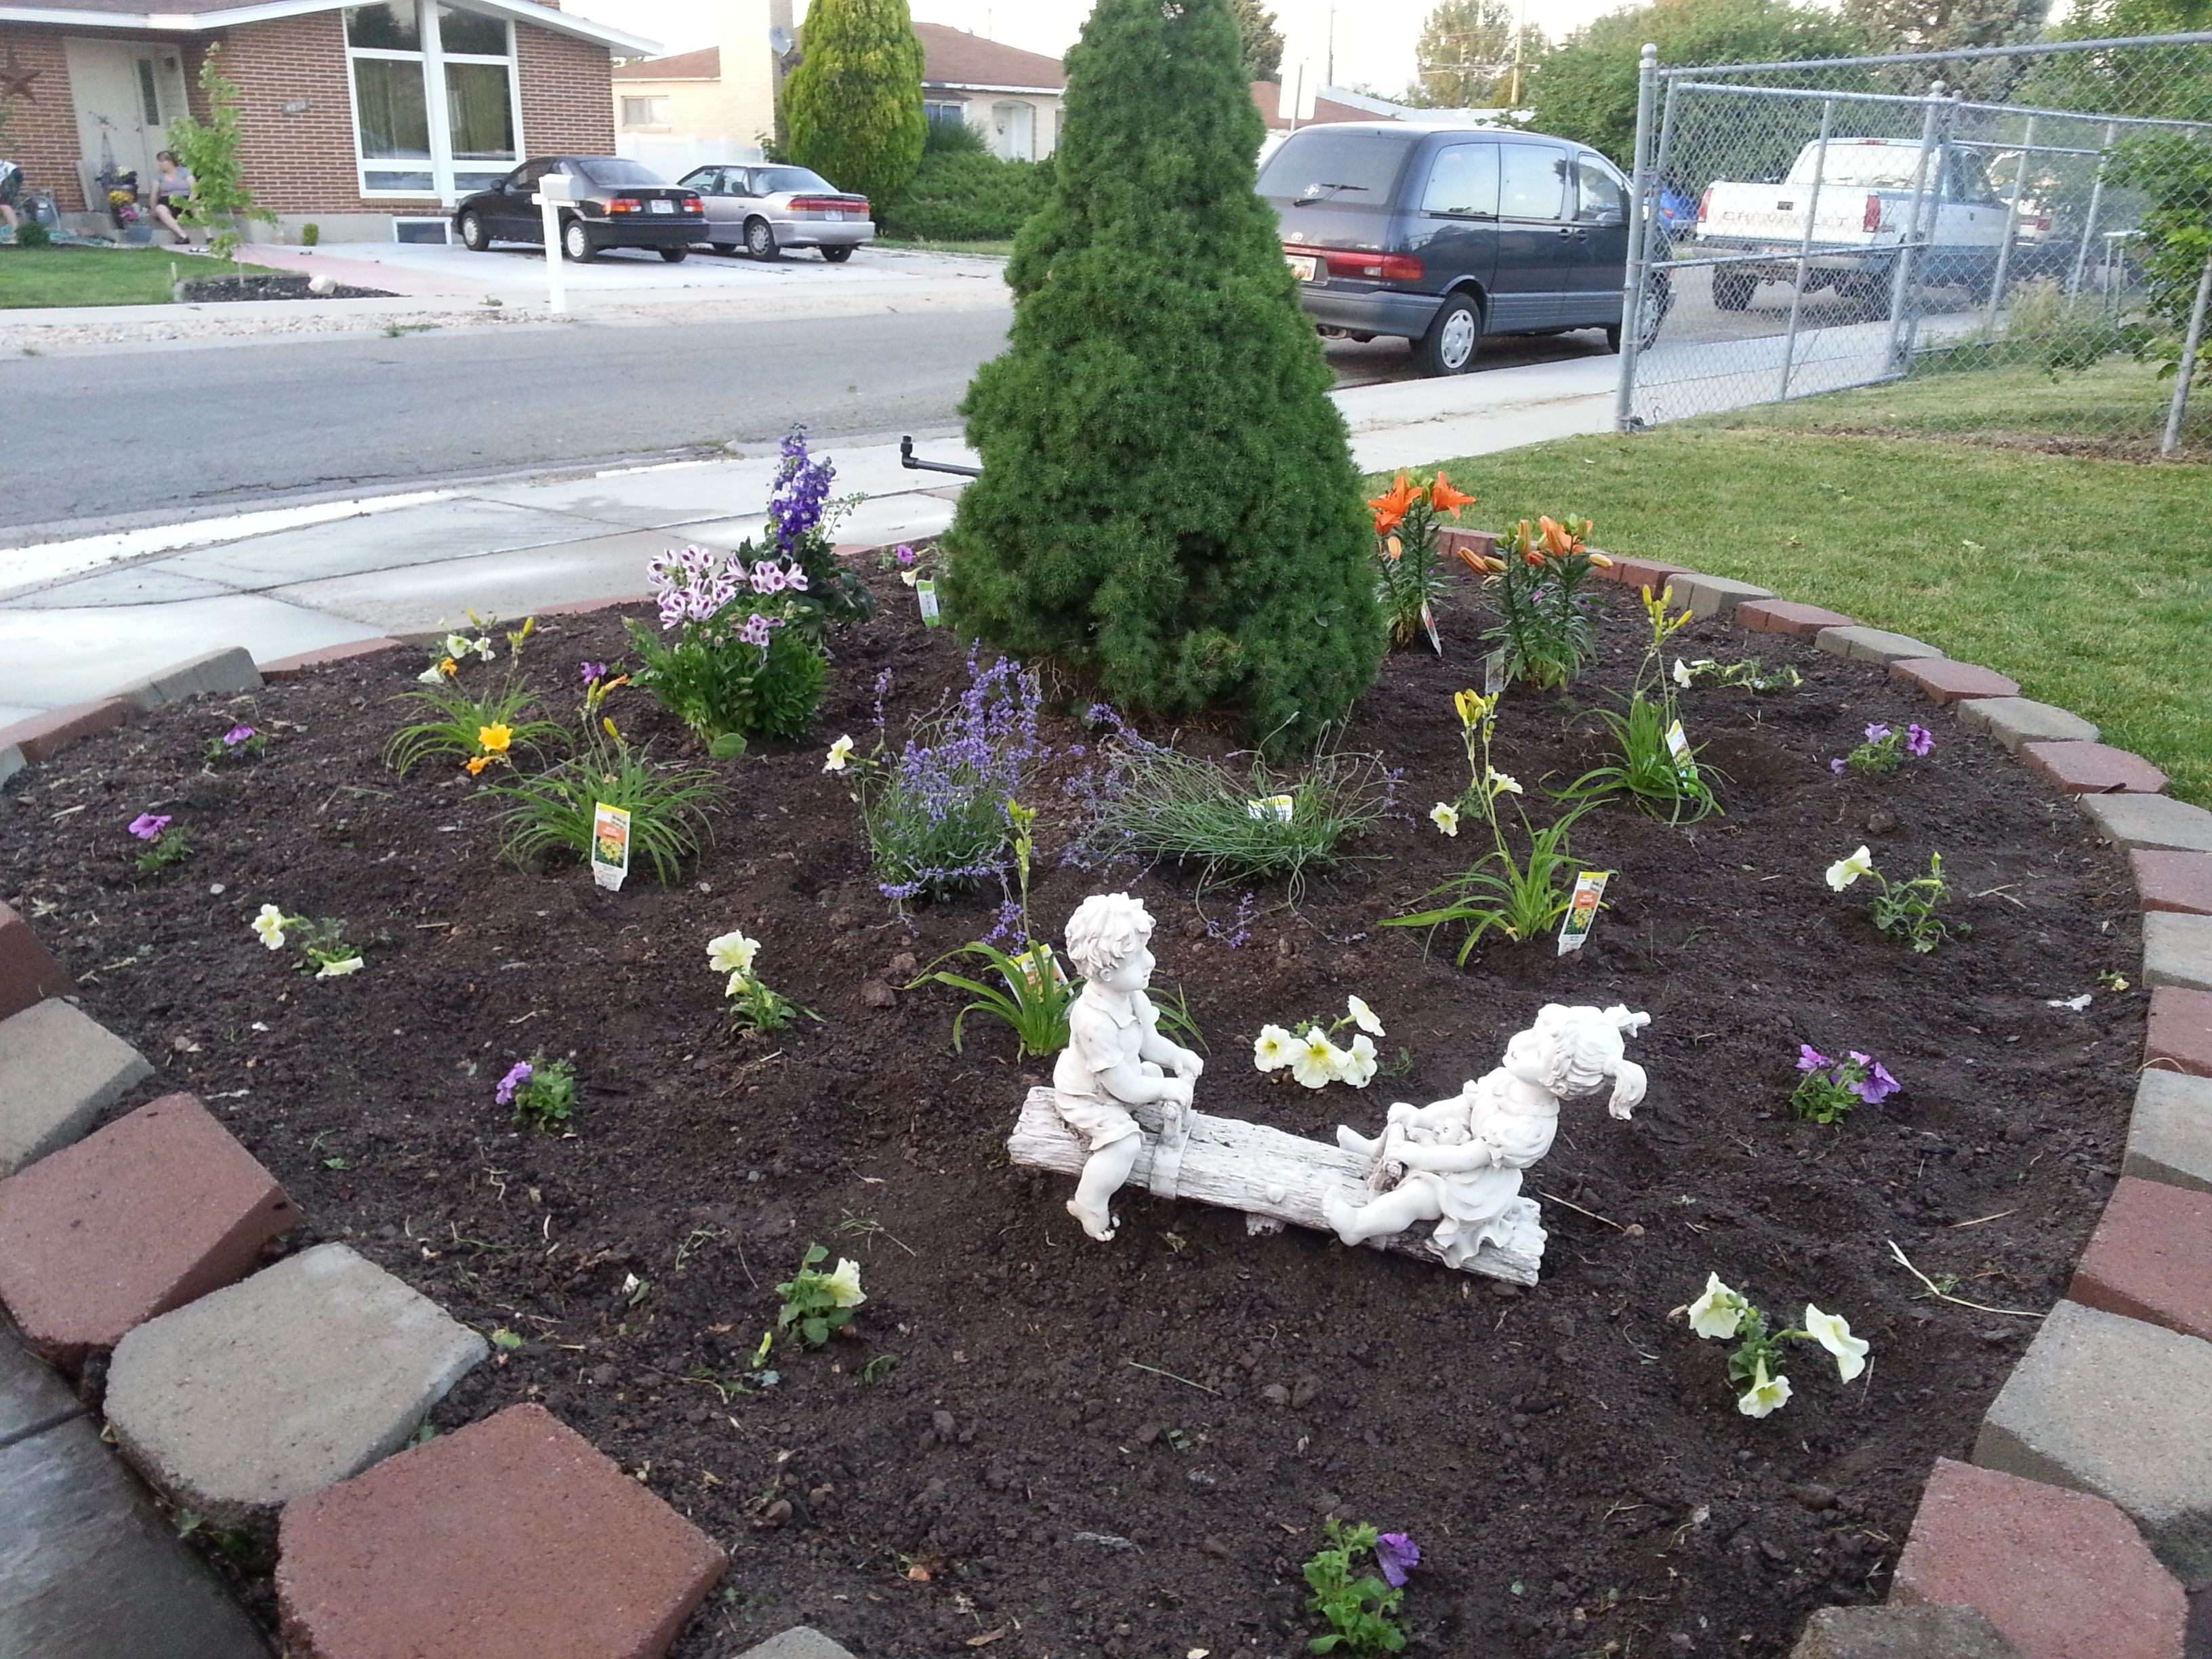 Flower bed makeover (AFTER) - added top dressing mulch and perennials